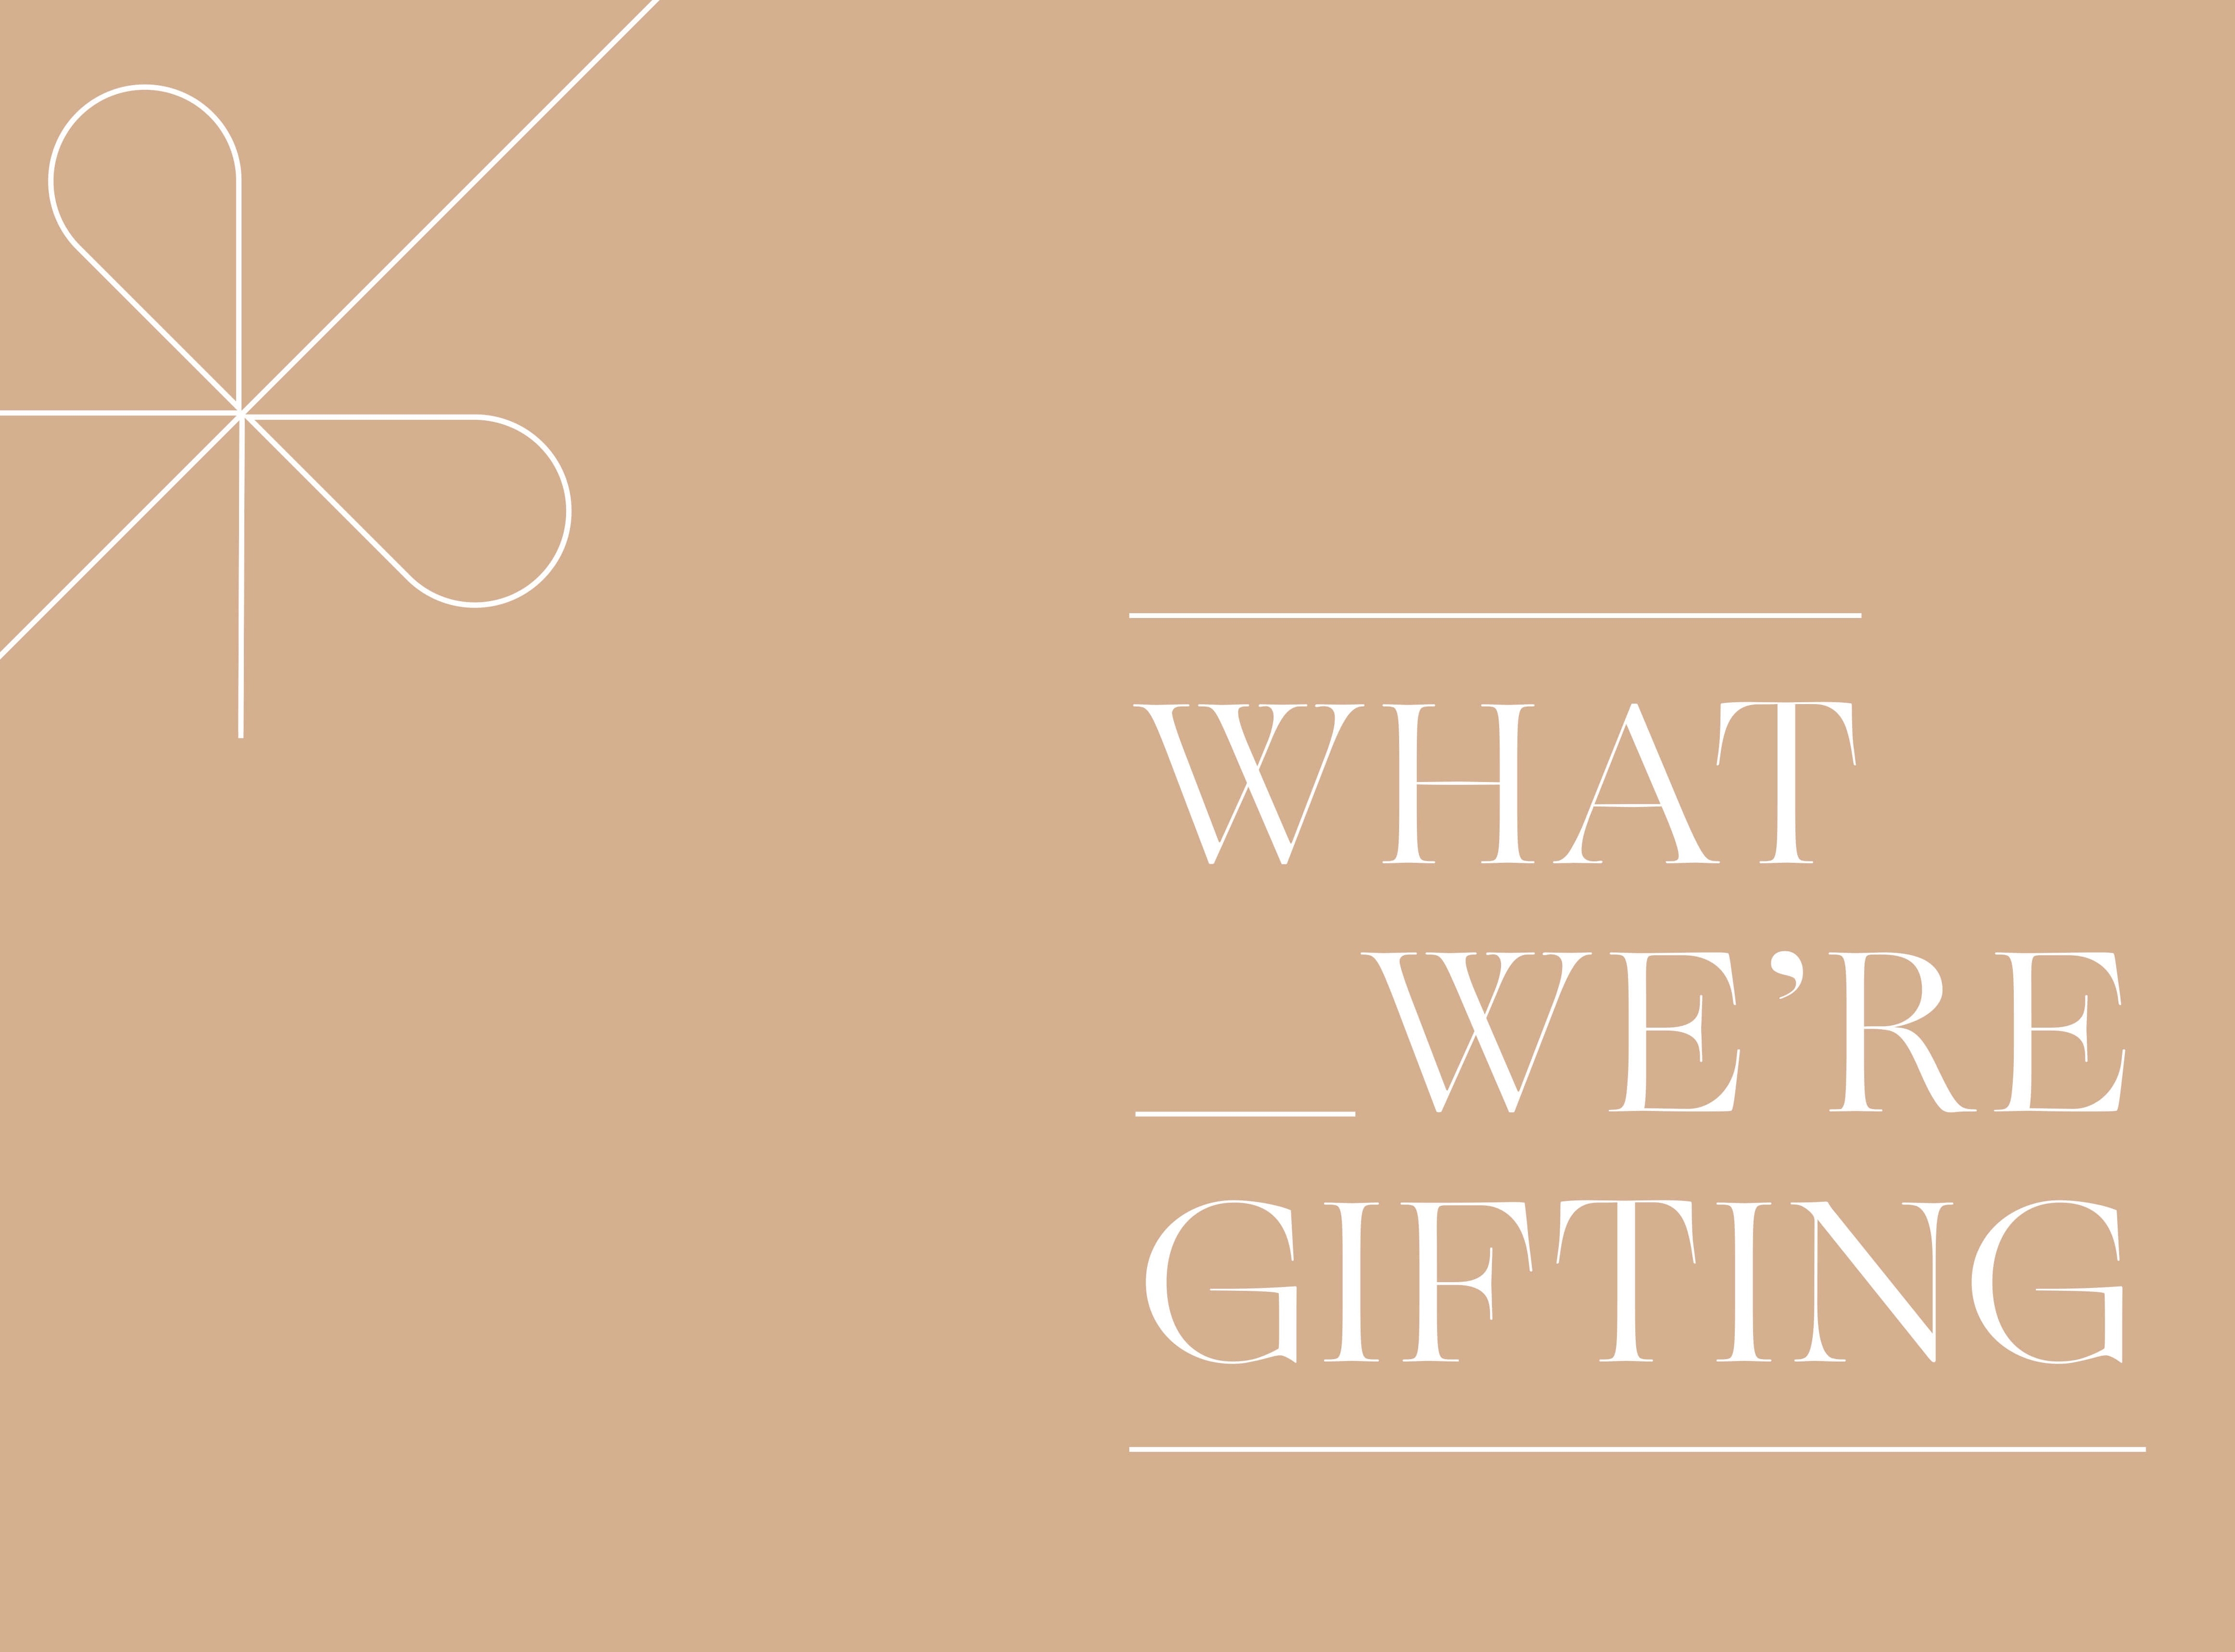 What we're gifting